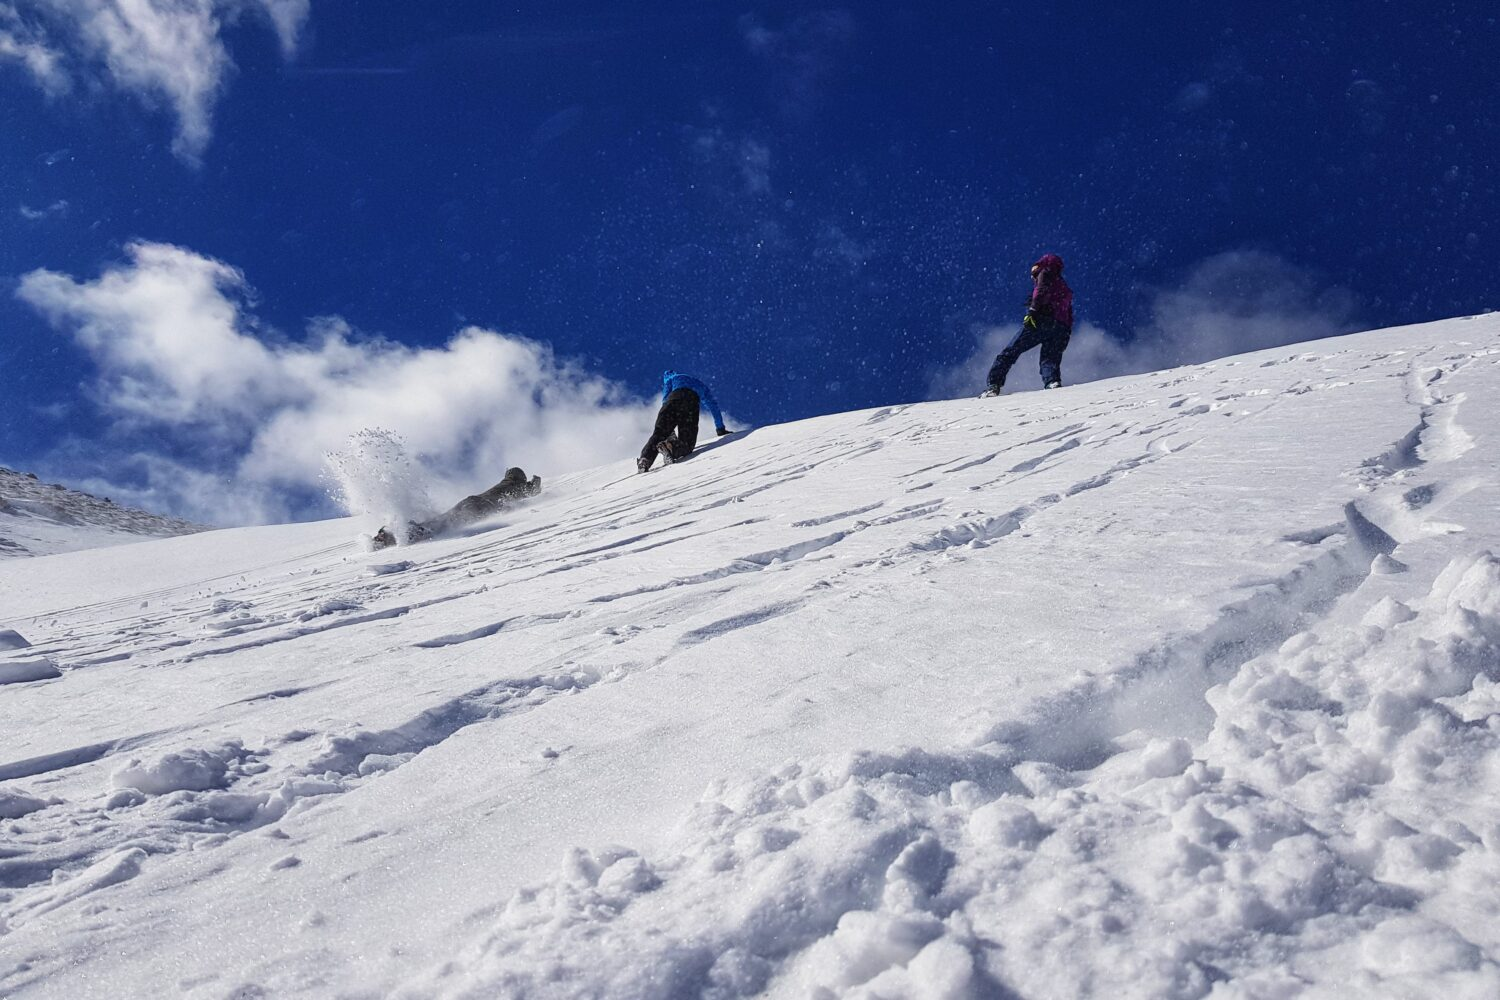 Snow activities and avalanche rescue exercise